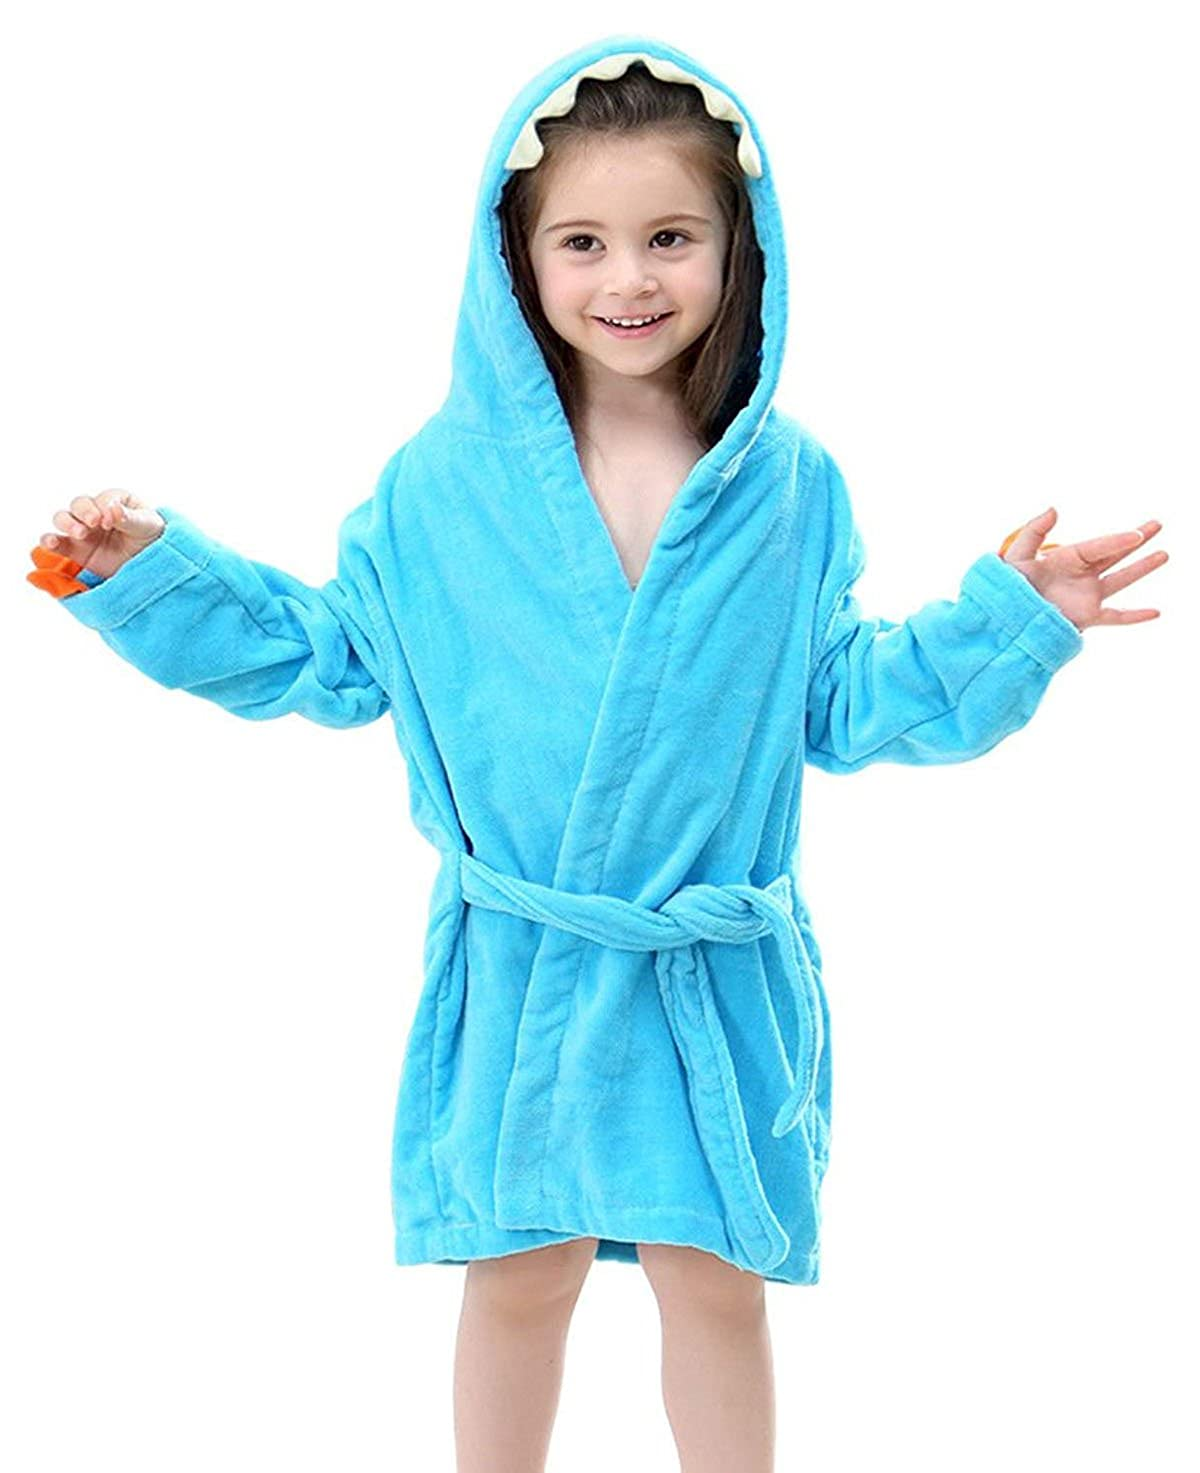 Girls Boys Toddler Robe, Kids Hooded Cotton Terry Dinosaur Bathrobe